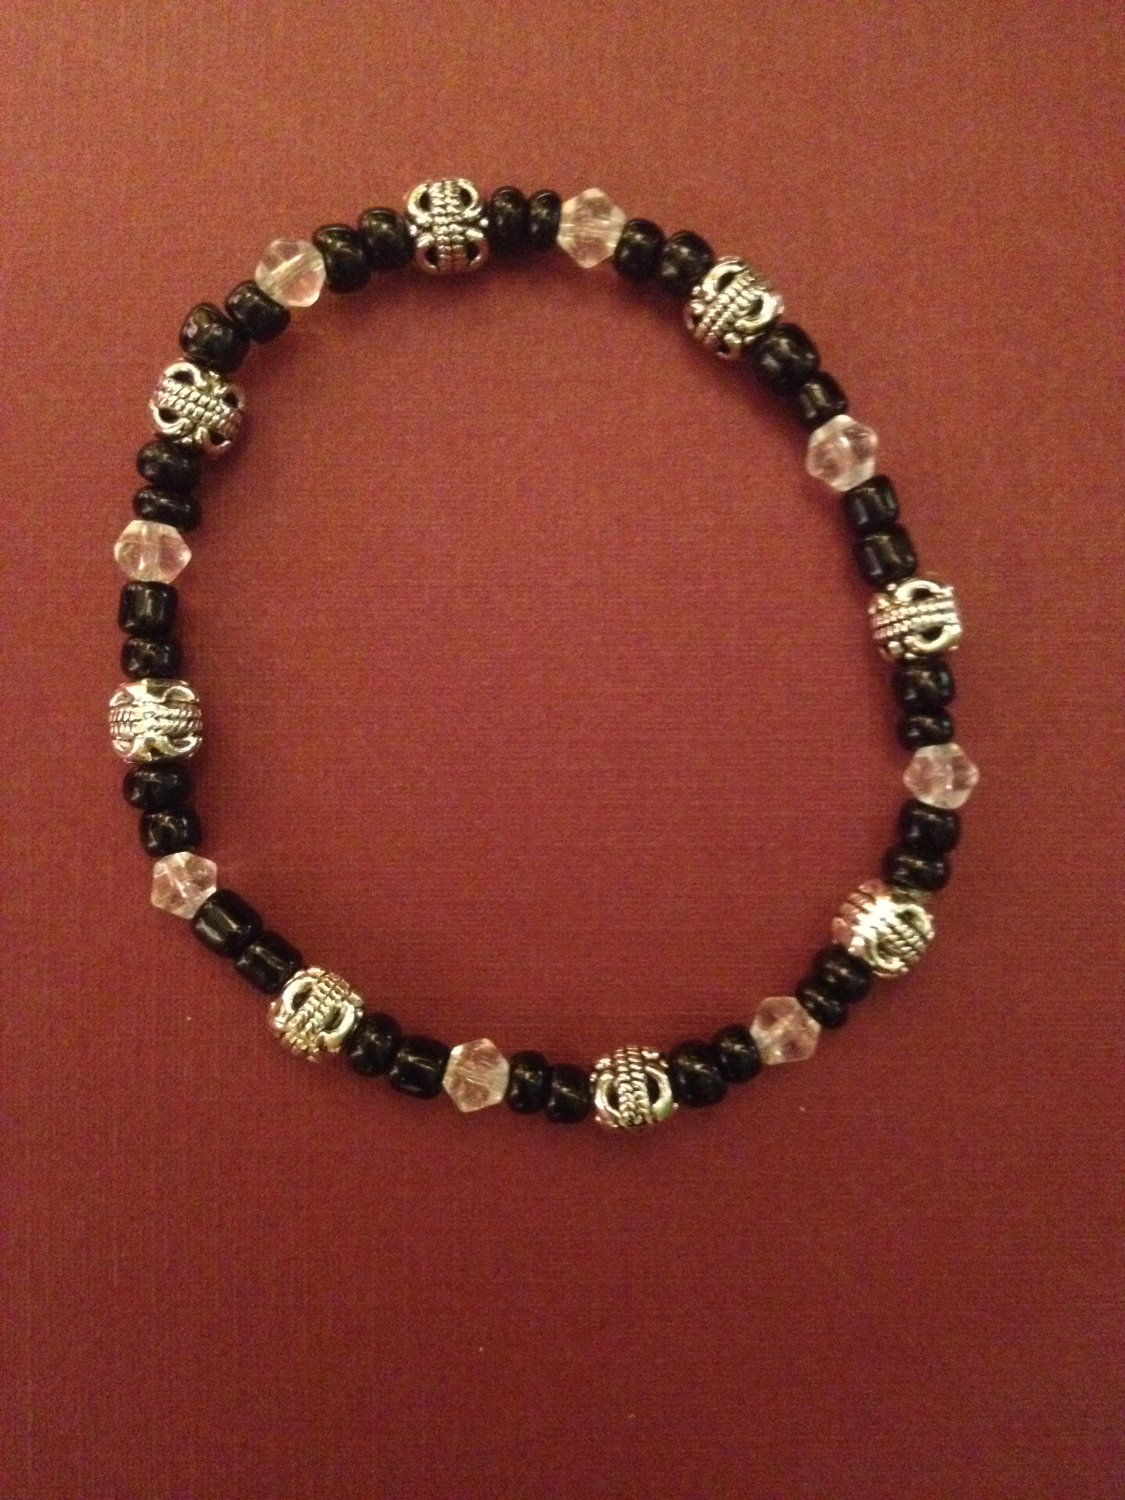 Antique Silver-Plated with Black and Crystal Bracelet